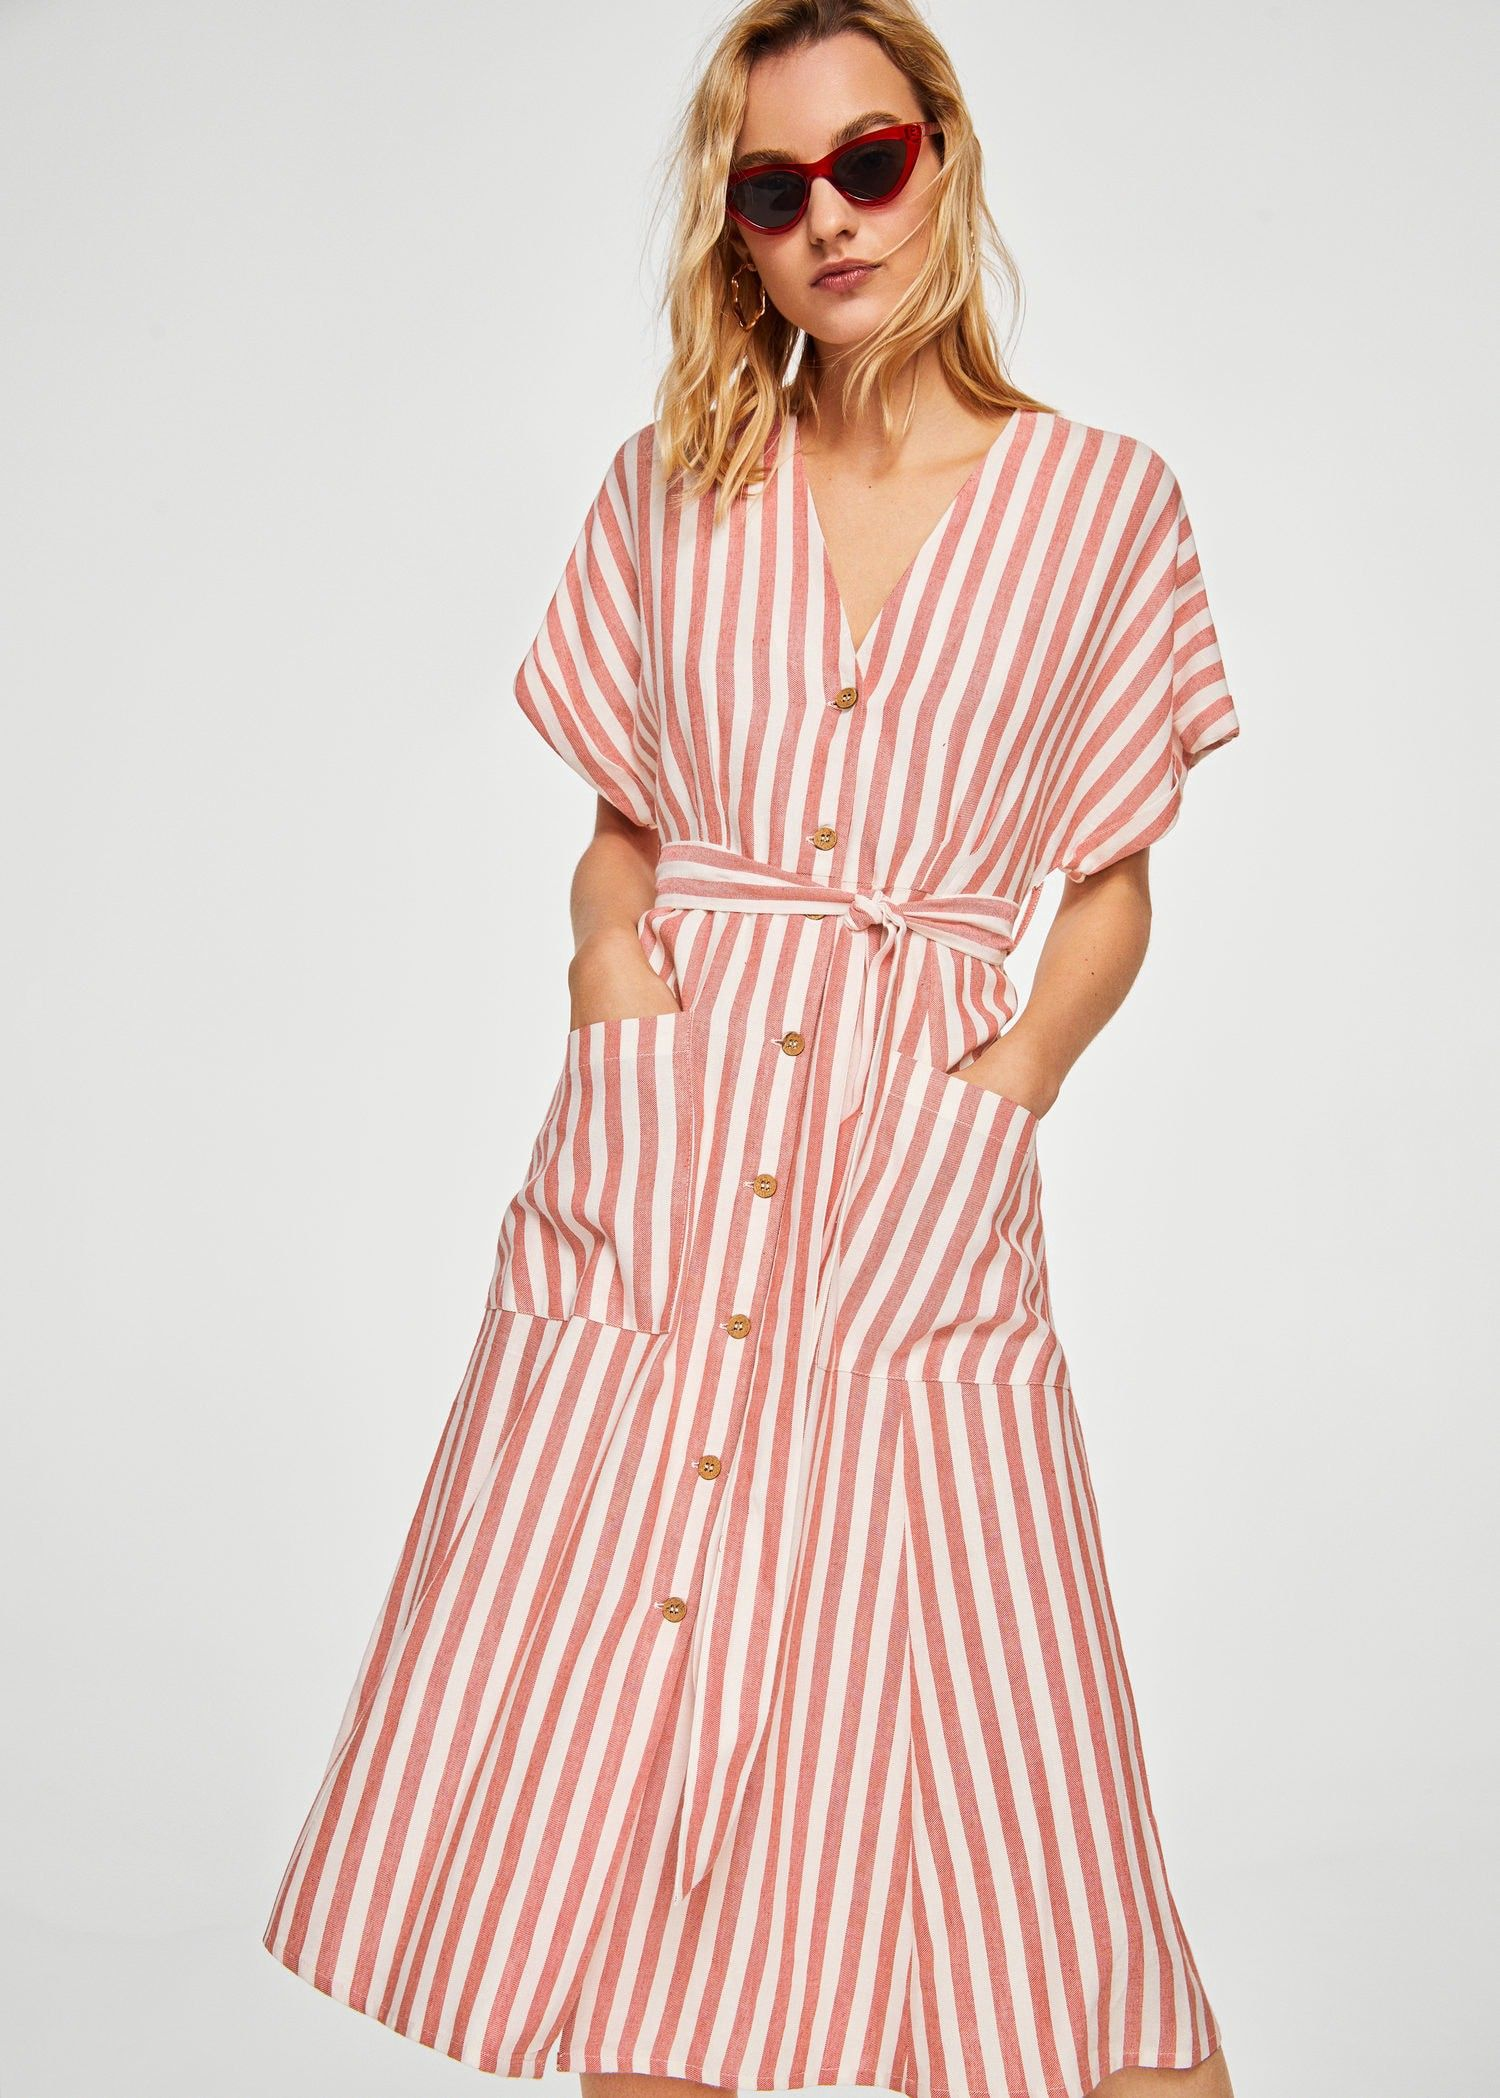 Mango Striped Midi Dress - Women  24fd0ce6a